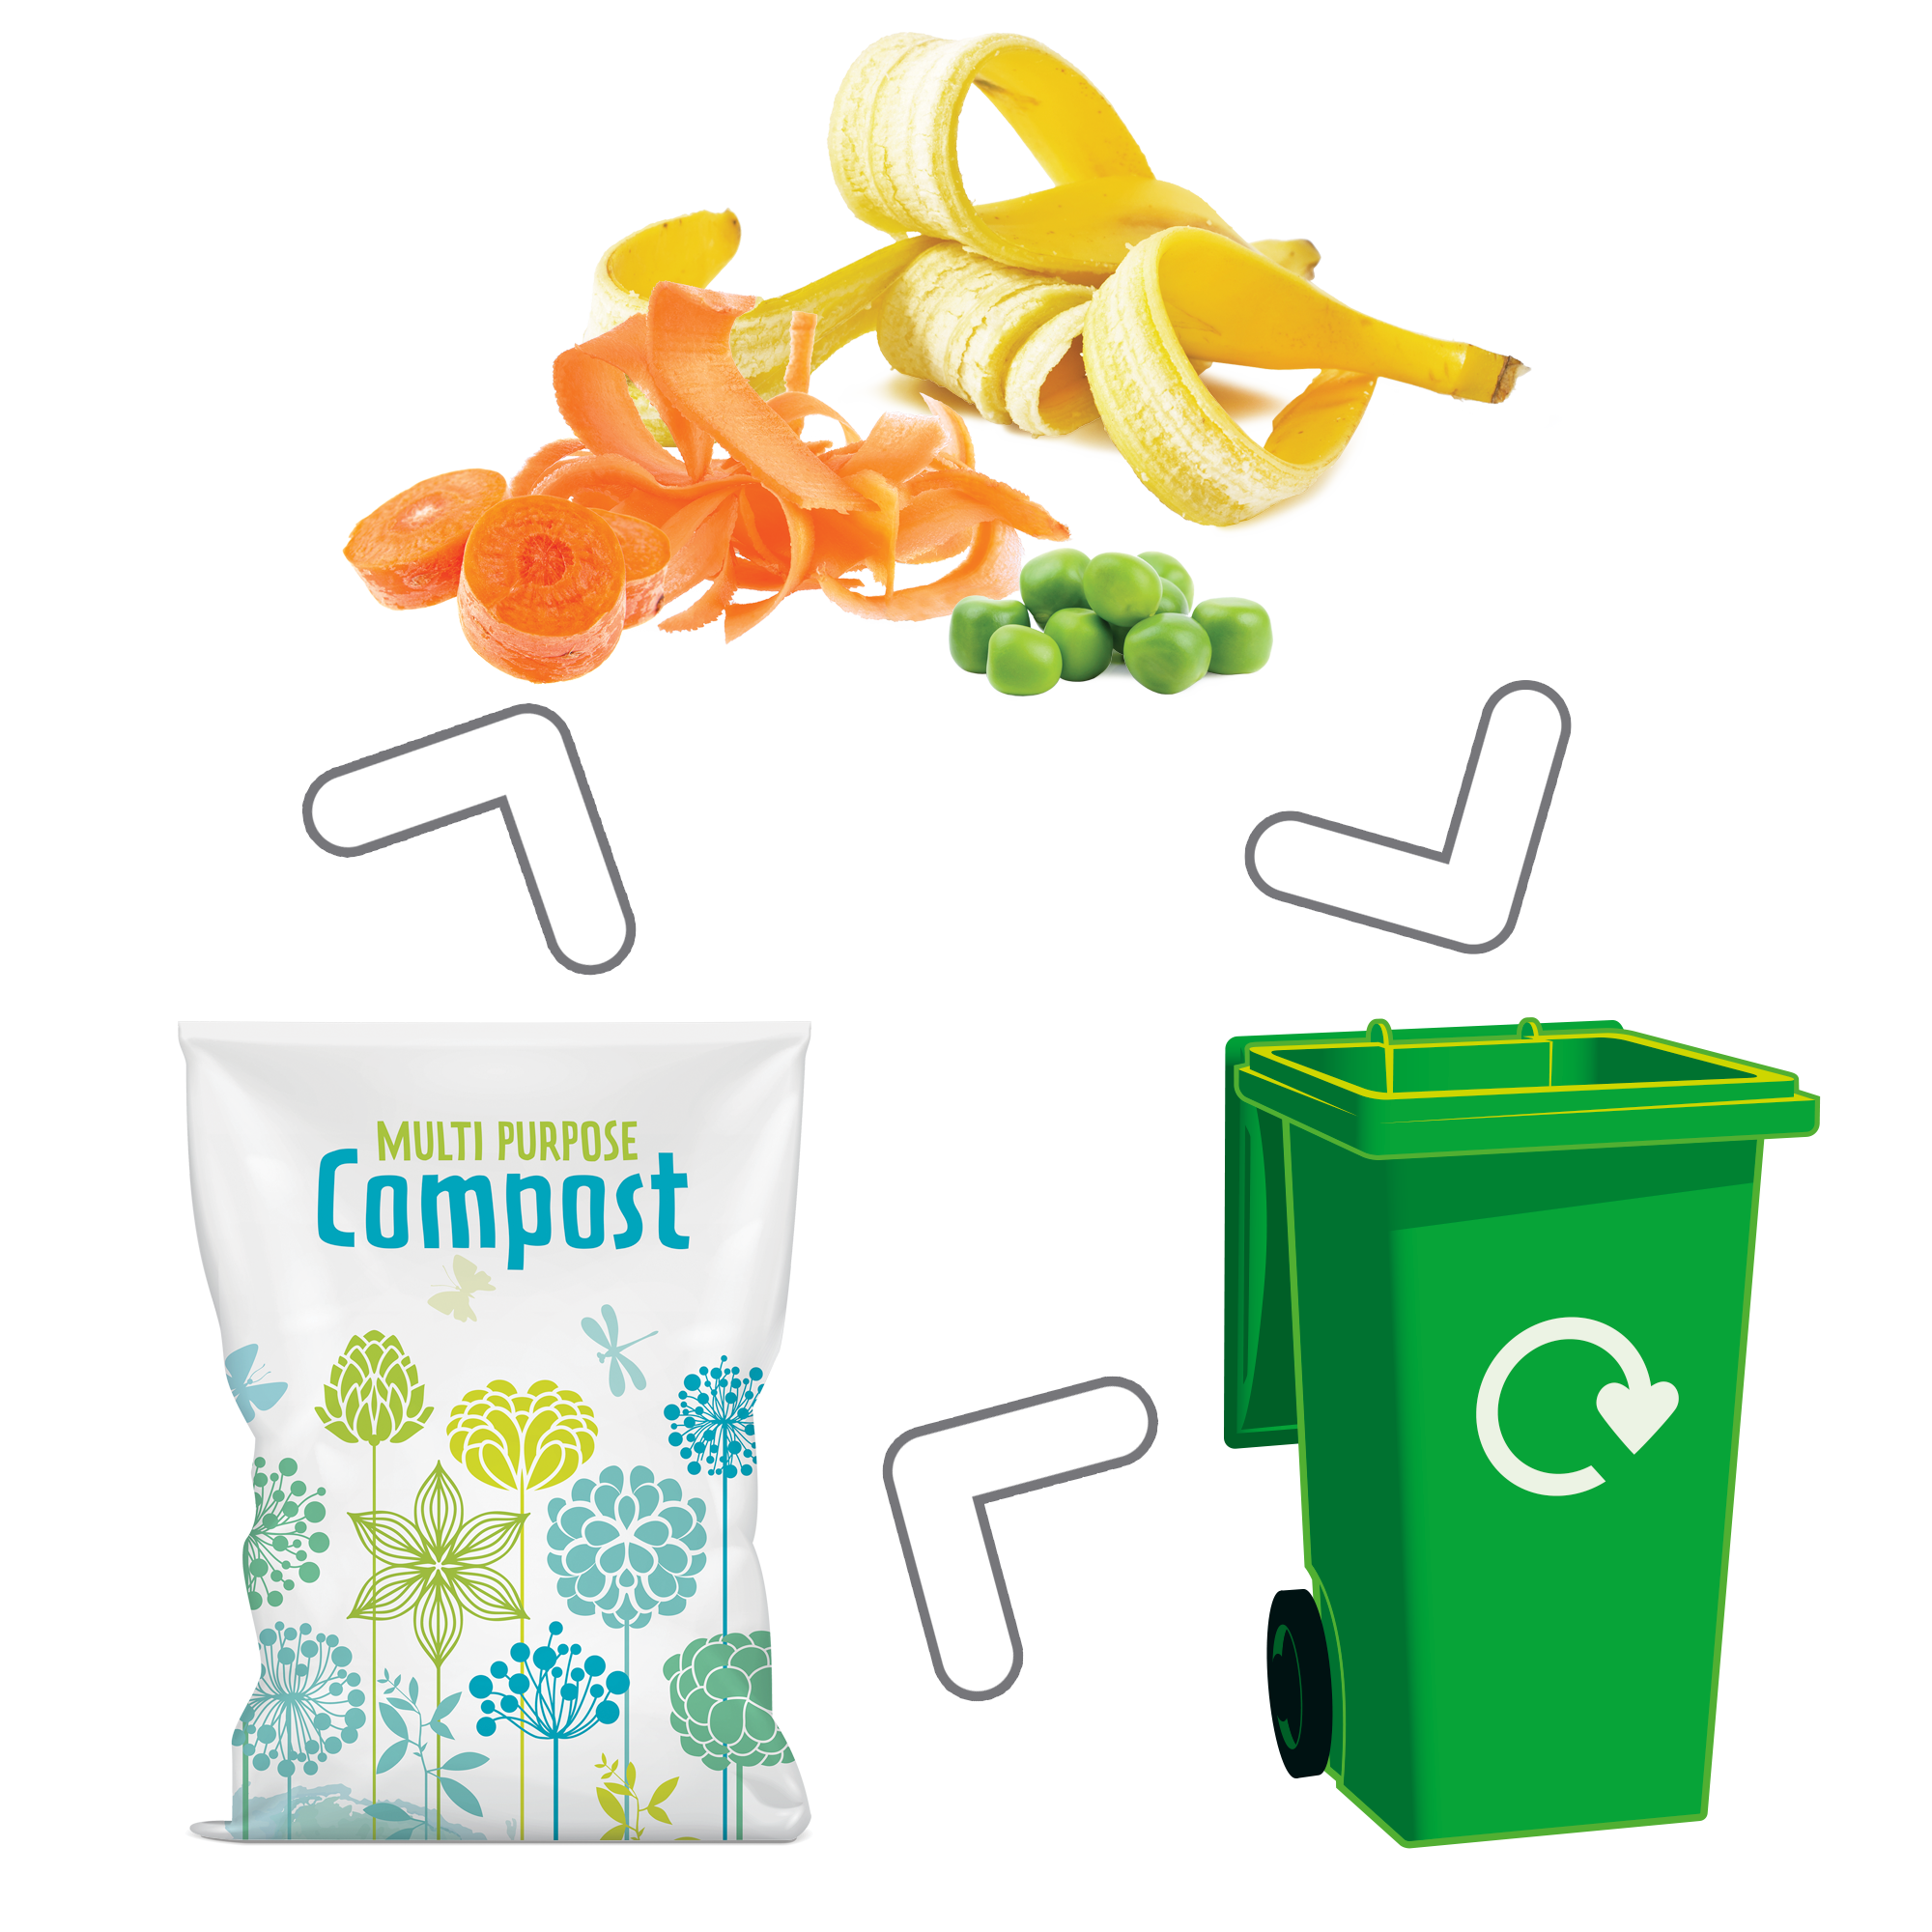 Newspaper clipart paper waste. Recycle for greater manchester